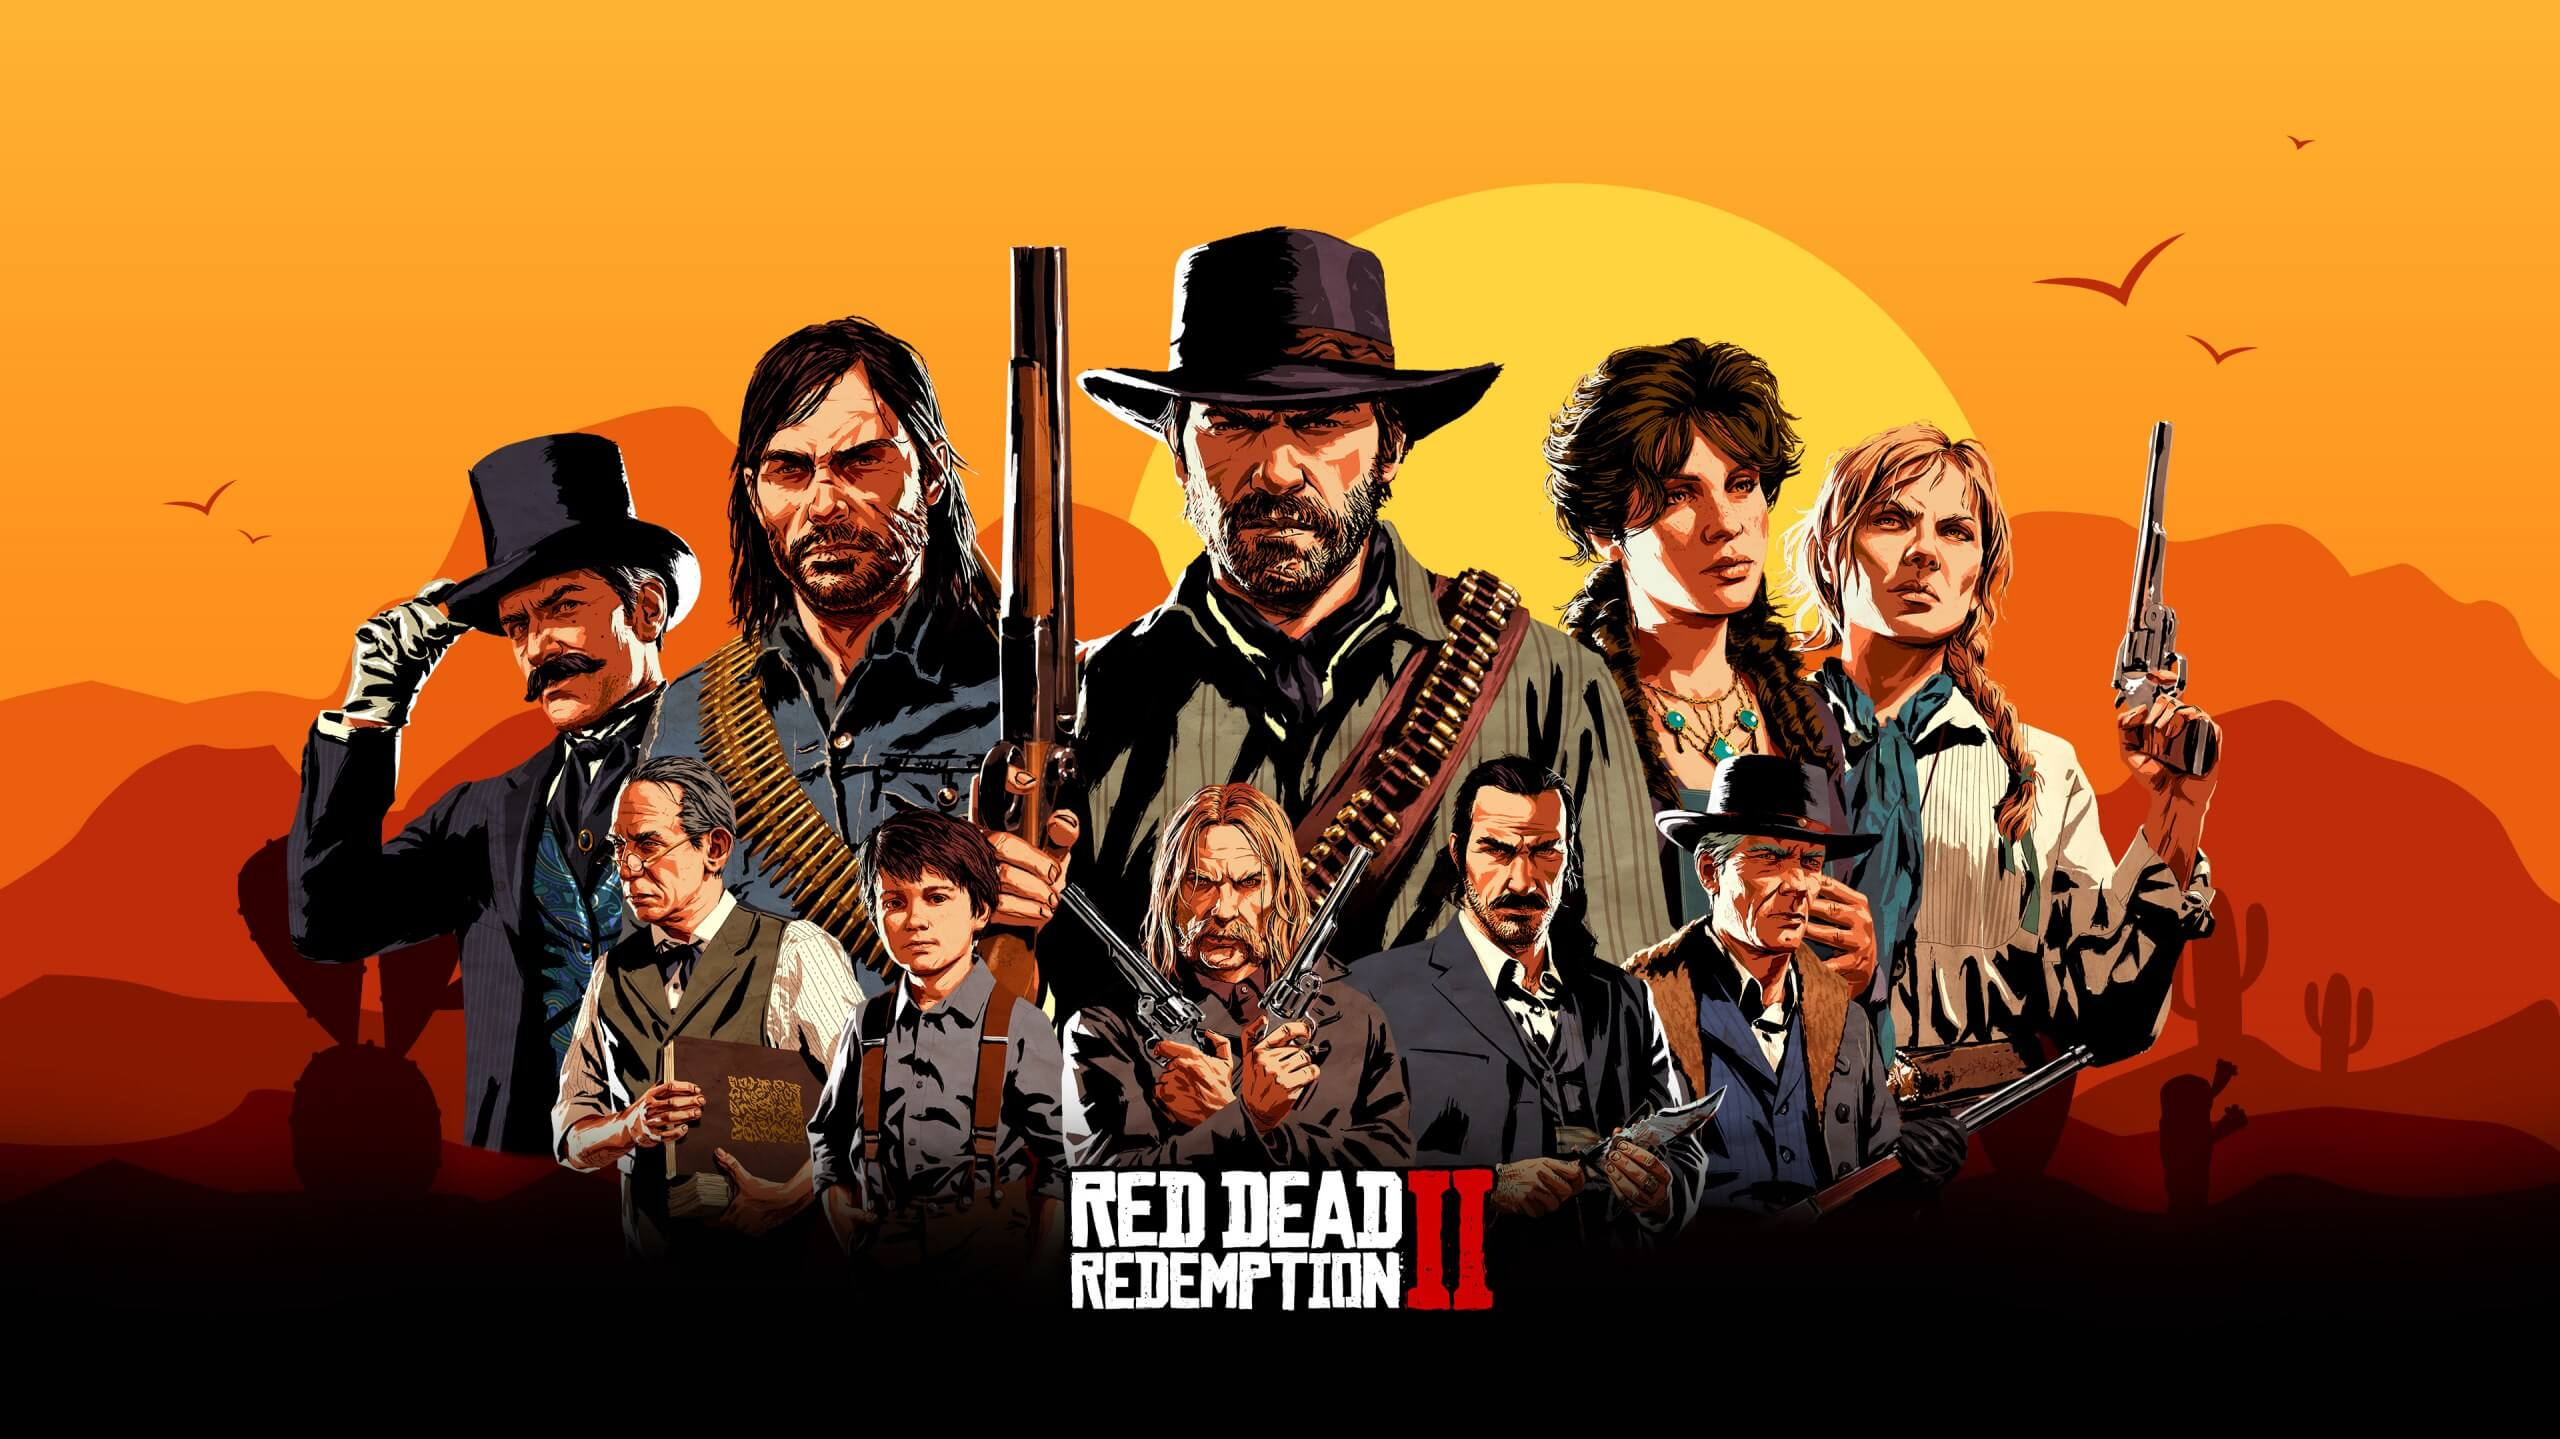 Red Dead Redemption 2 hits Xbox Game Pass May 7